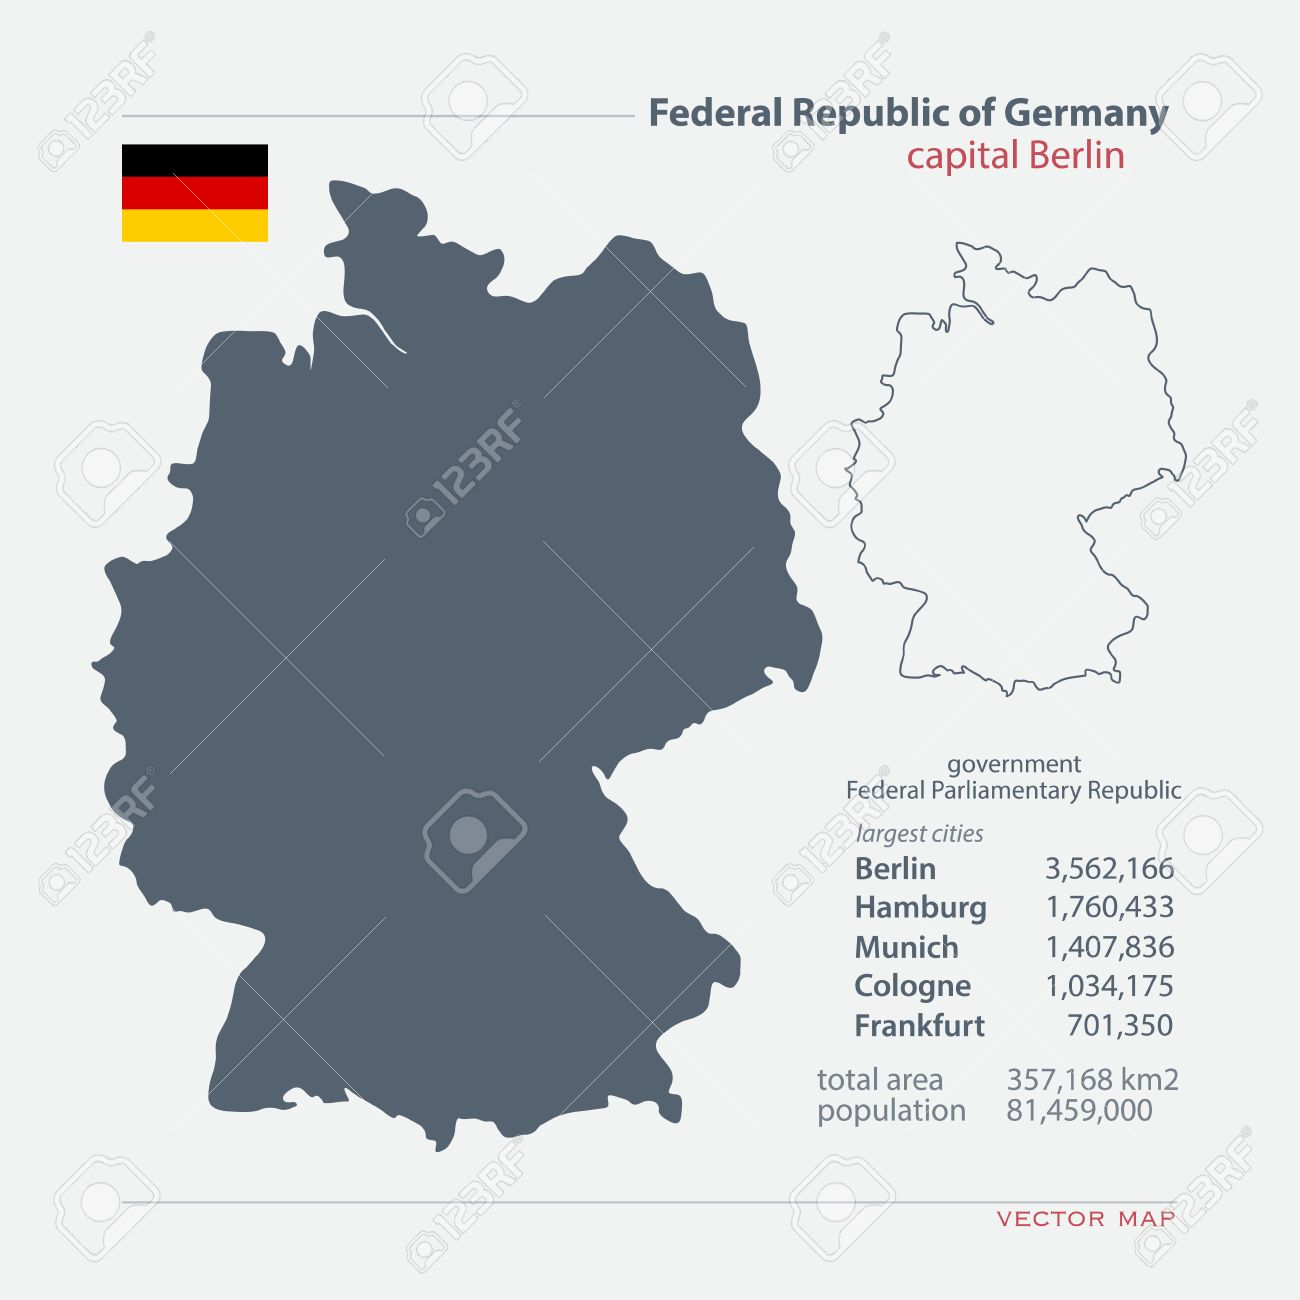 Federal Republic Of Germany Isolated Maps And Official Flag Icon Royalty Free Cliparts Vectors And Stock Illustration Image 57013209